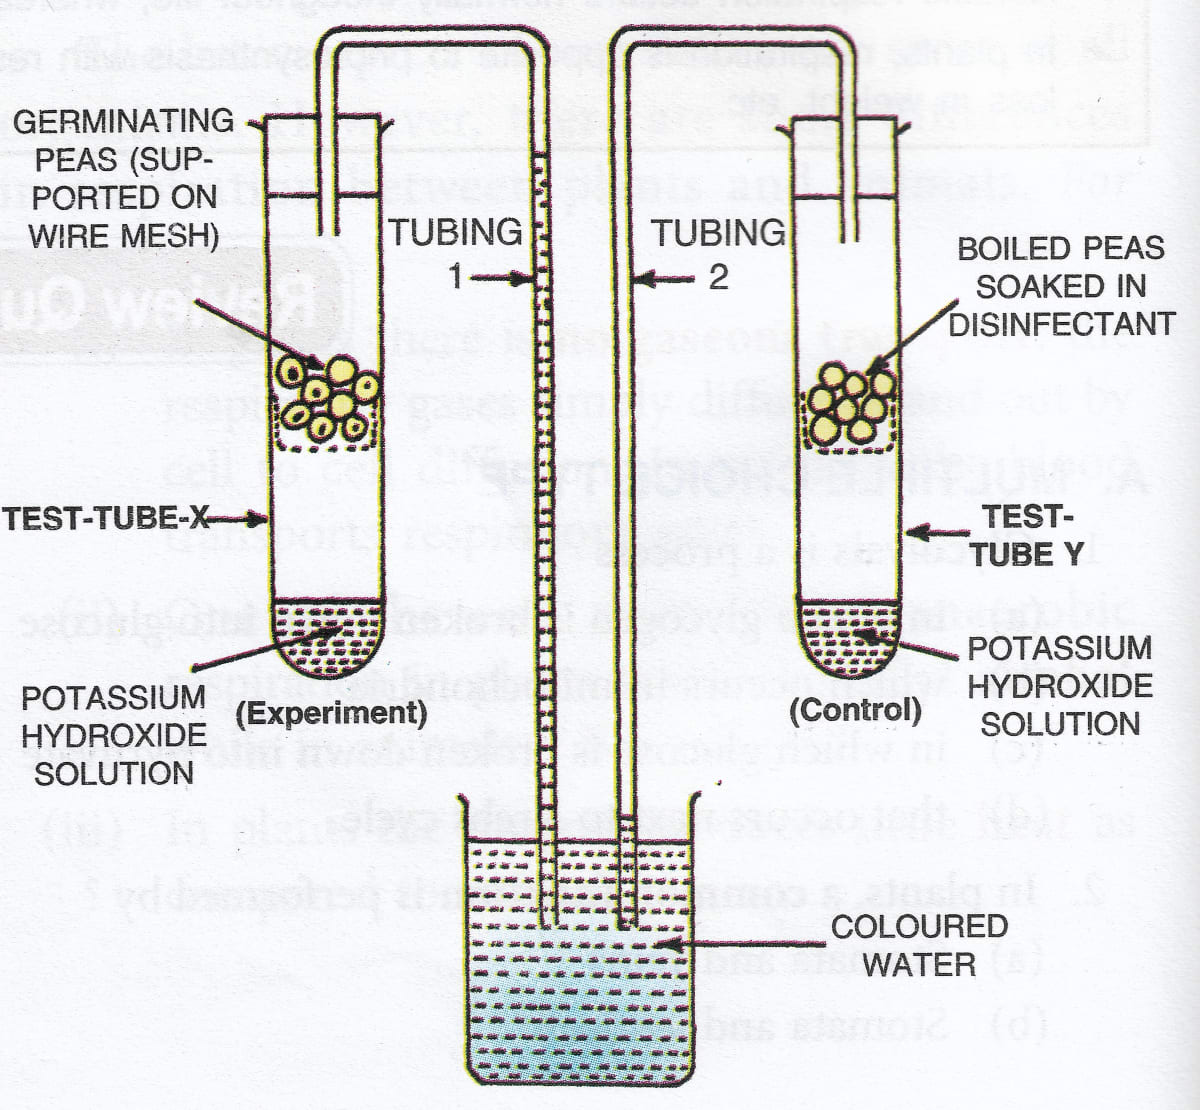 What is the purpose of keeping potassium hydroxide solution in the test tubes X and Y? Why has the coloured water risen in tubing 1? Respiration in Plants, Concise Biology Solutions ICSE Class 9.